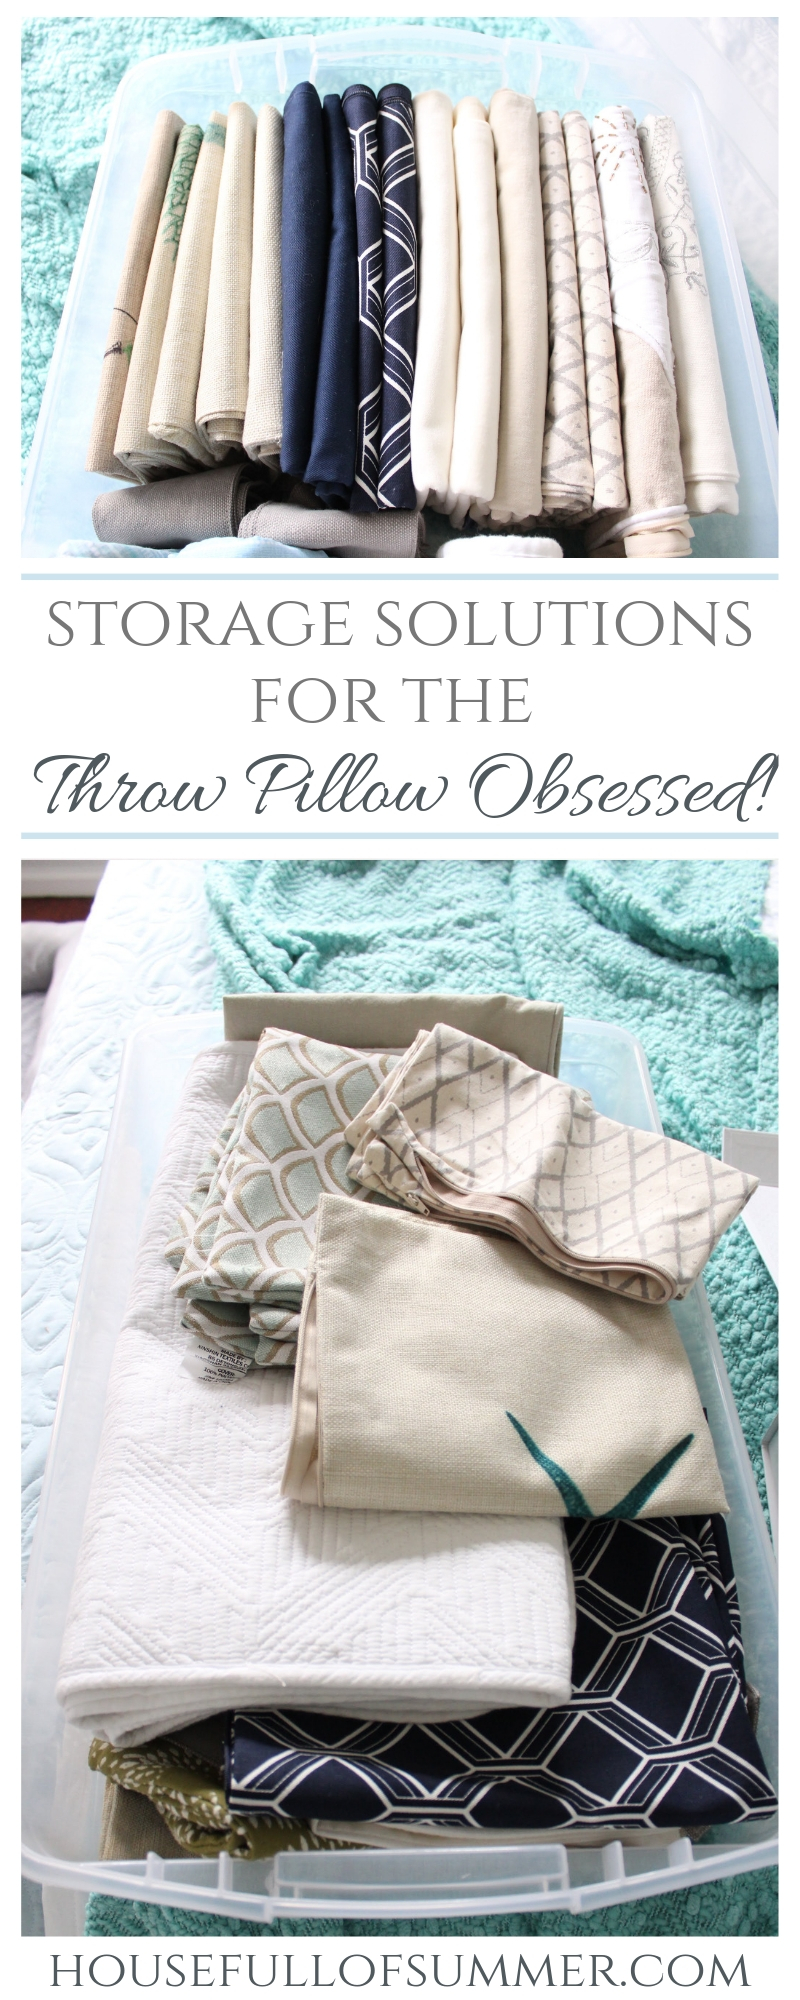 Storage Solutions For The Throw Pillow Obsessed House Full